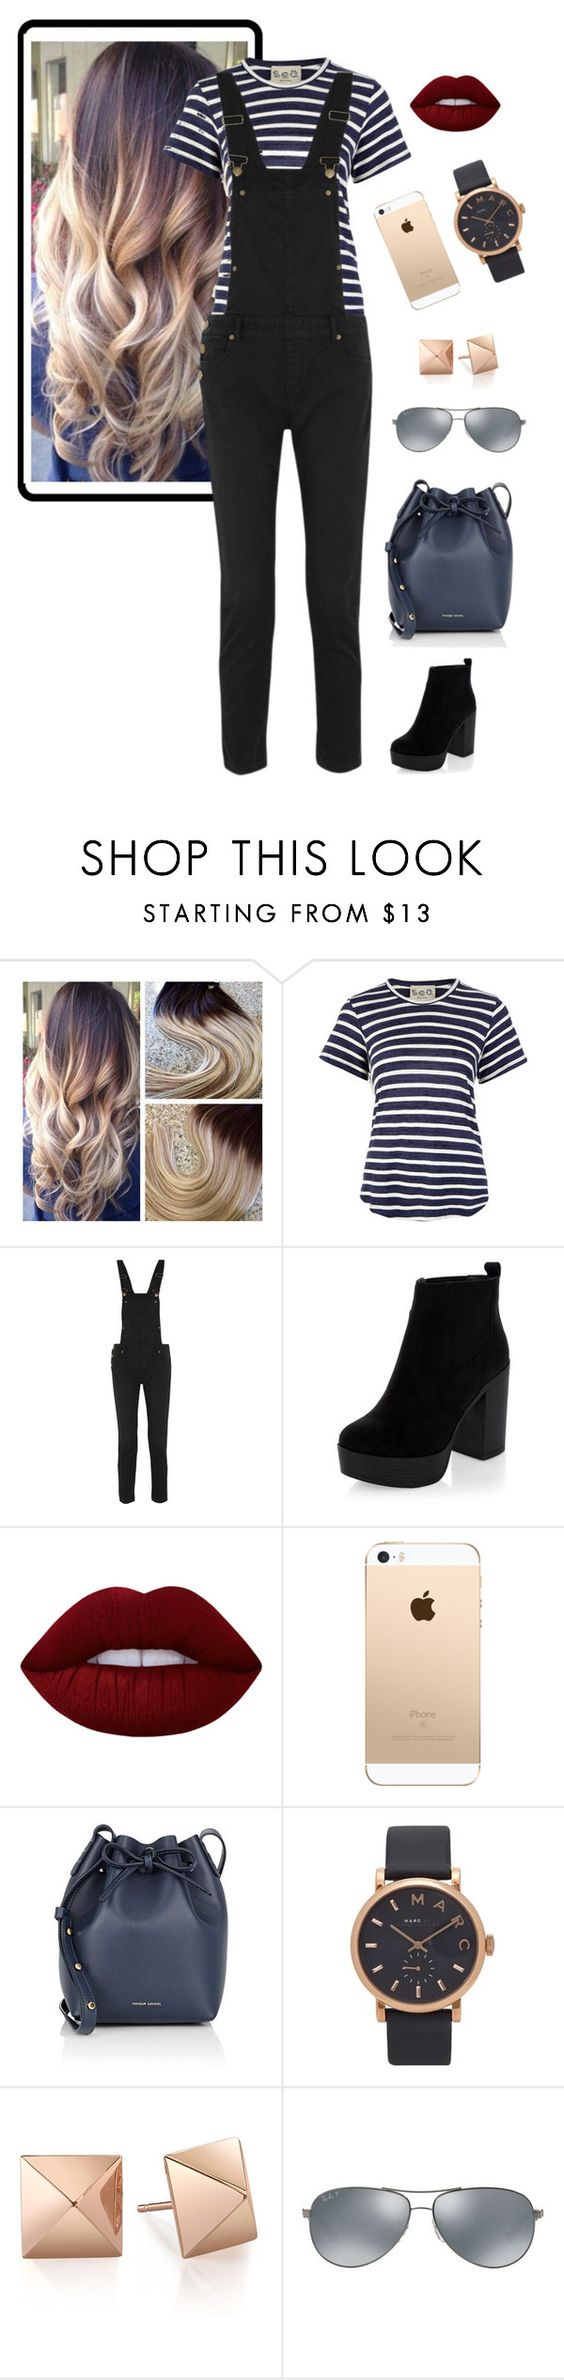 """""""High Street"""" by snowflake-city ❤ liked on Polyvore featuring Sea, New York, Maje, Lime Crime, Mansur Gavriel, Marc Jacobs and Ray-Ban"""